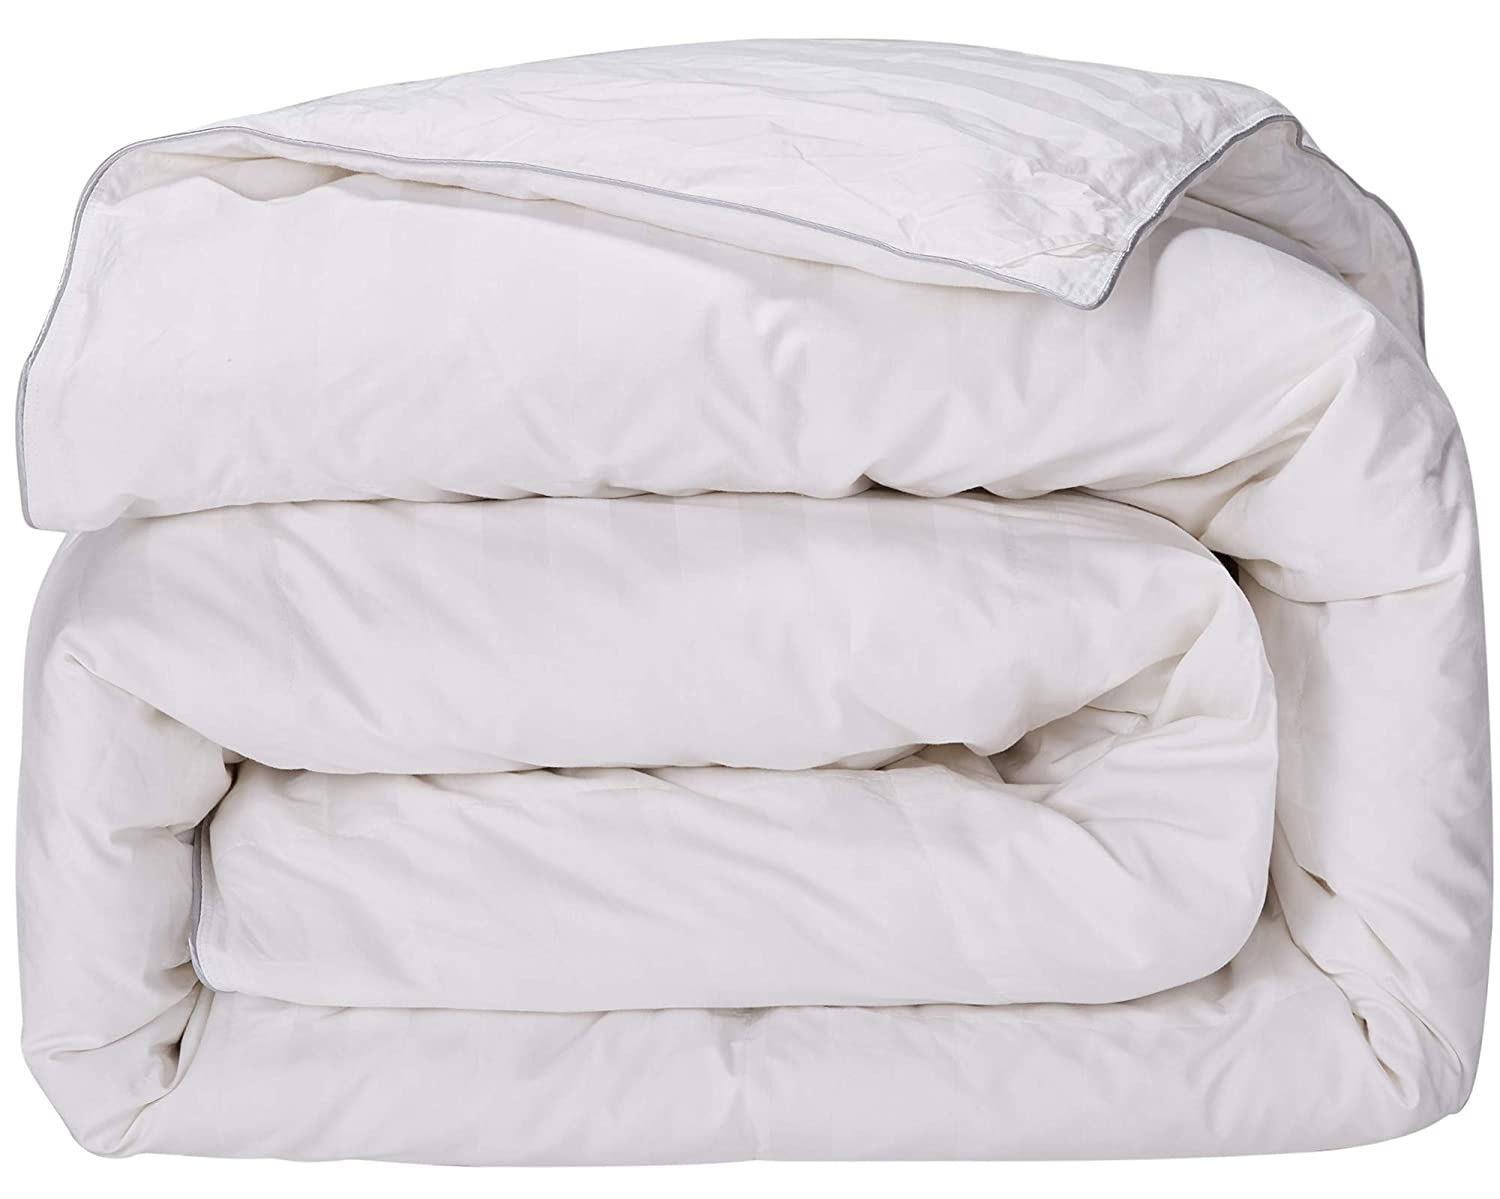 puredown All Season Down Comforter Stripe White 100% Cotton Shell 500 Thread Count 800 Fill Power Twin/Twin XL-Large PD-DC15004-T